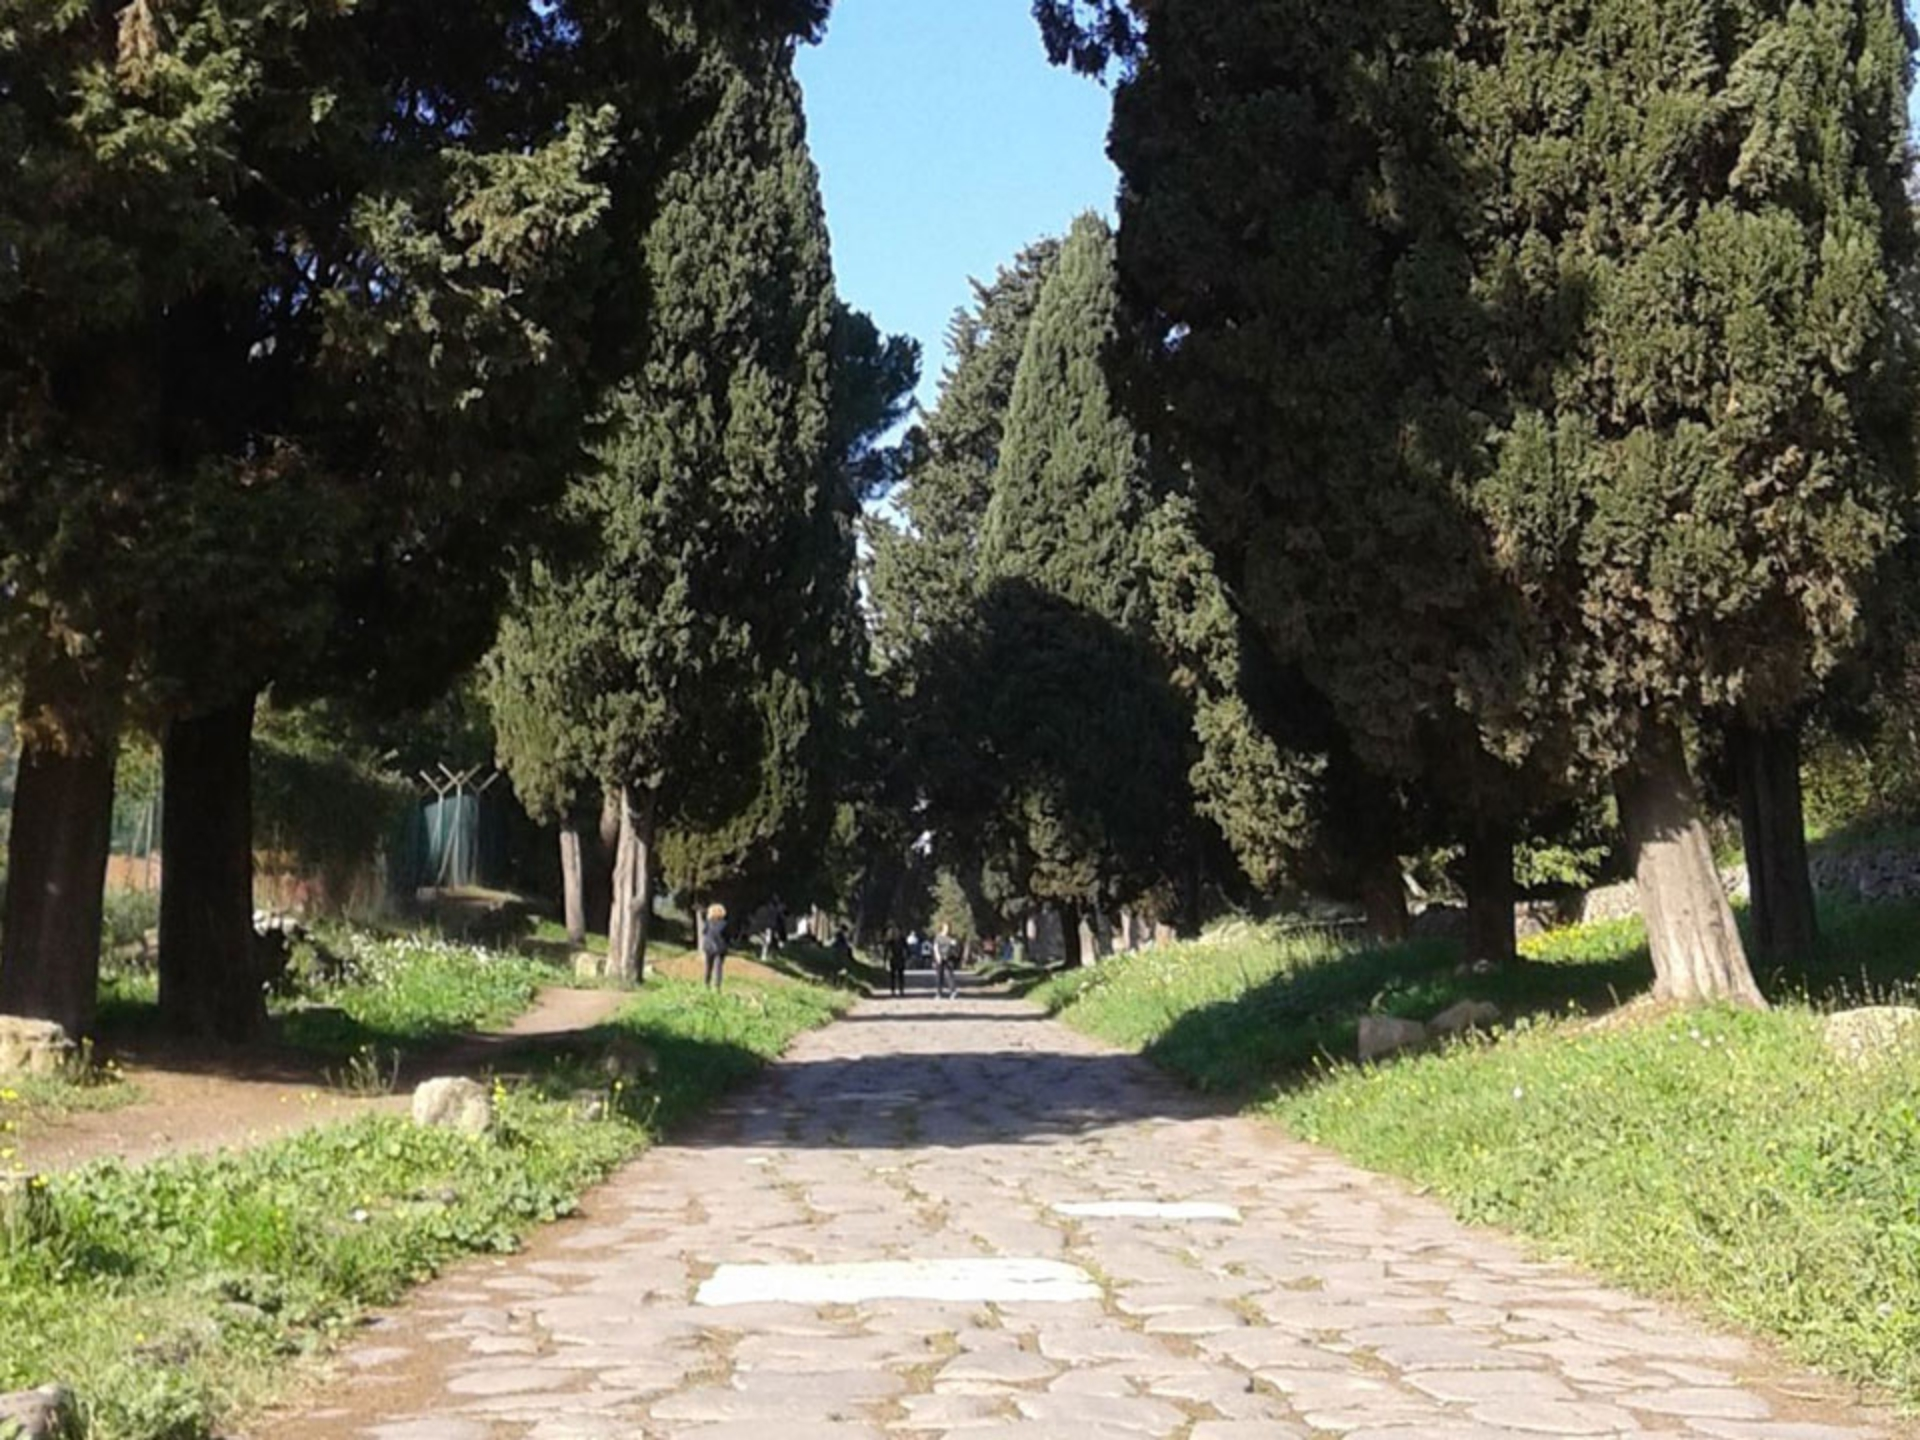 appian-way_Italy-Tour-With-Theresa_08